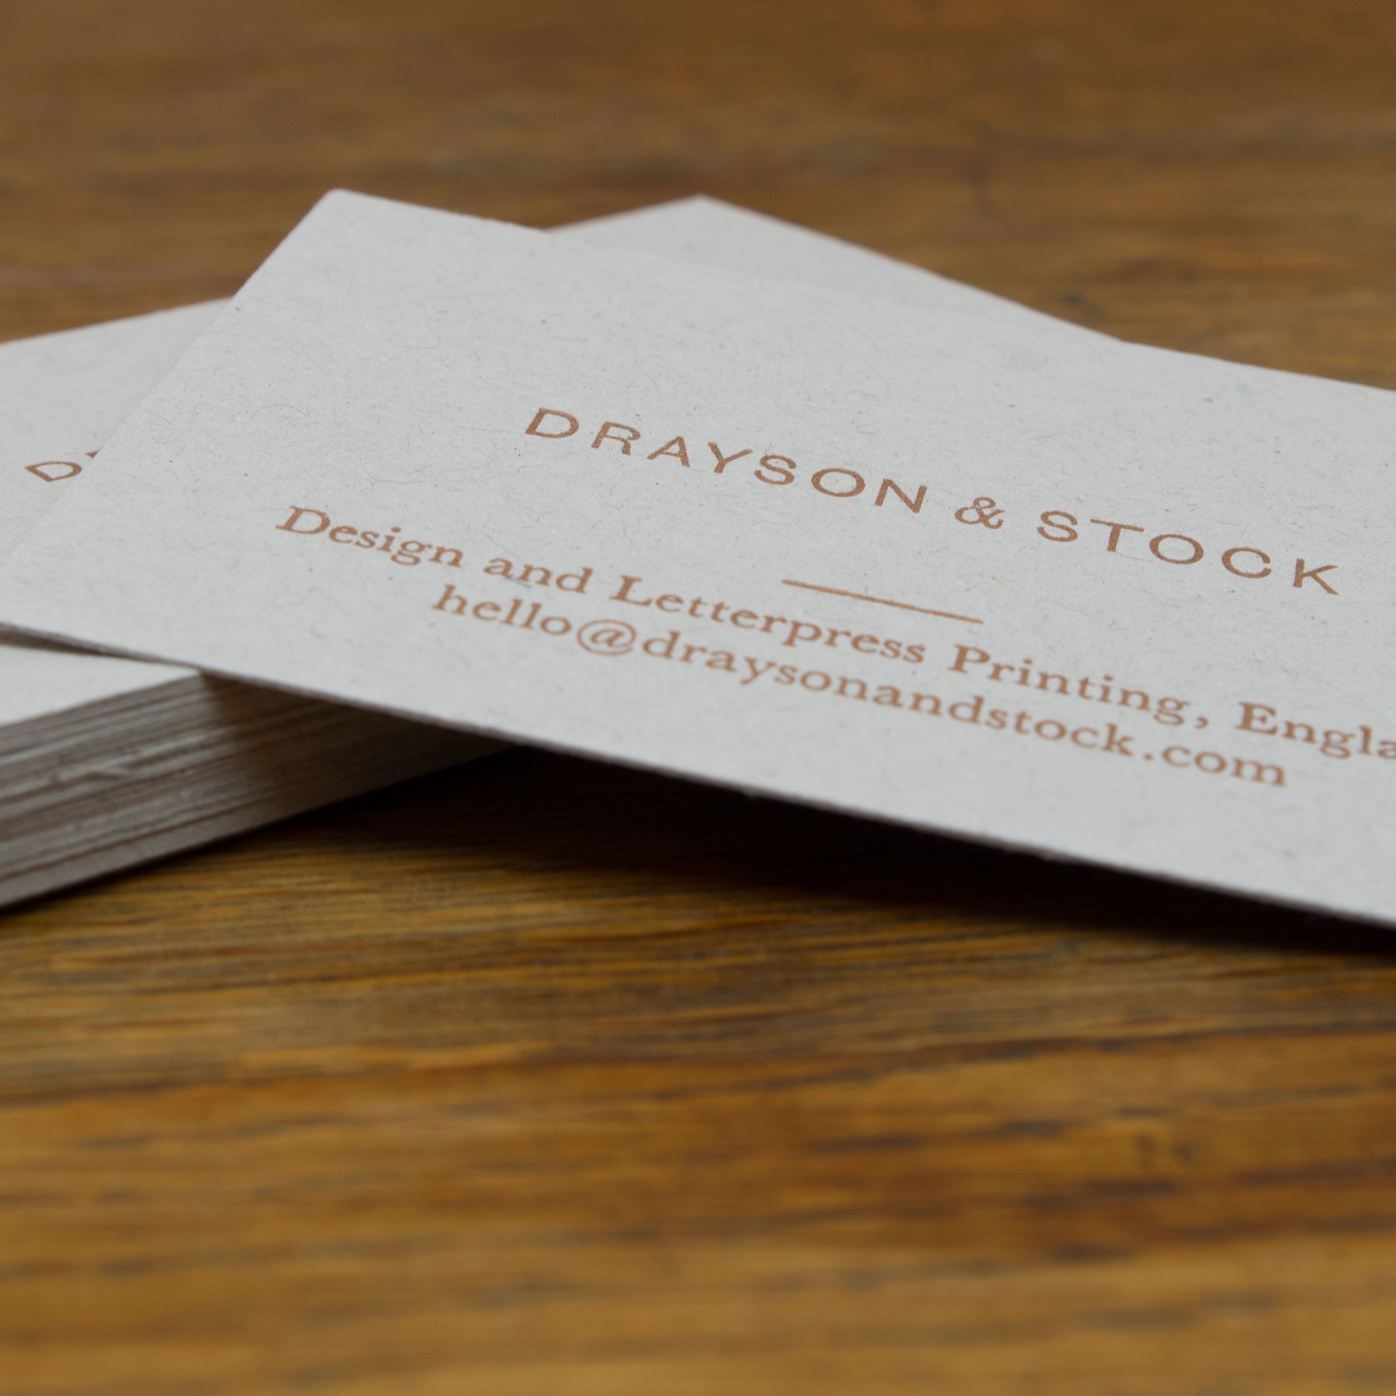 Drayson-and-Stock-business-cards.jpg